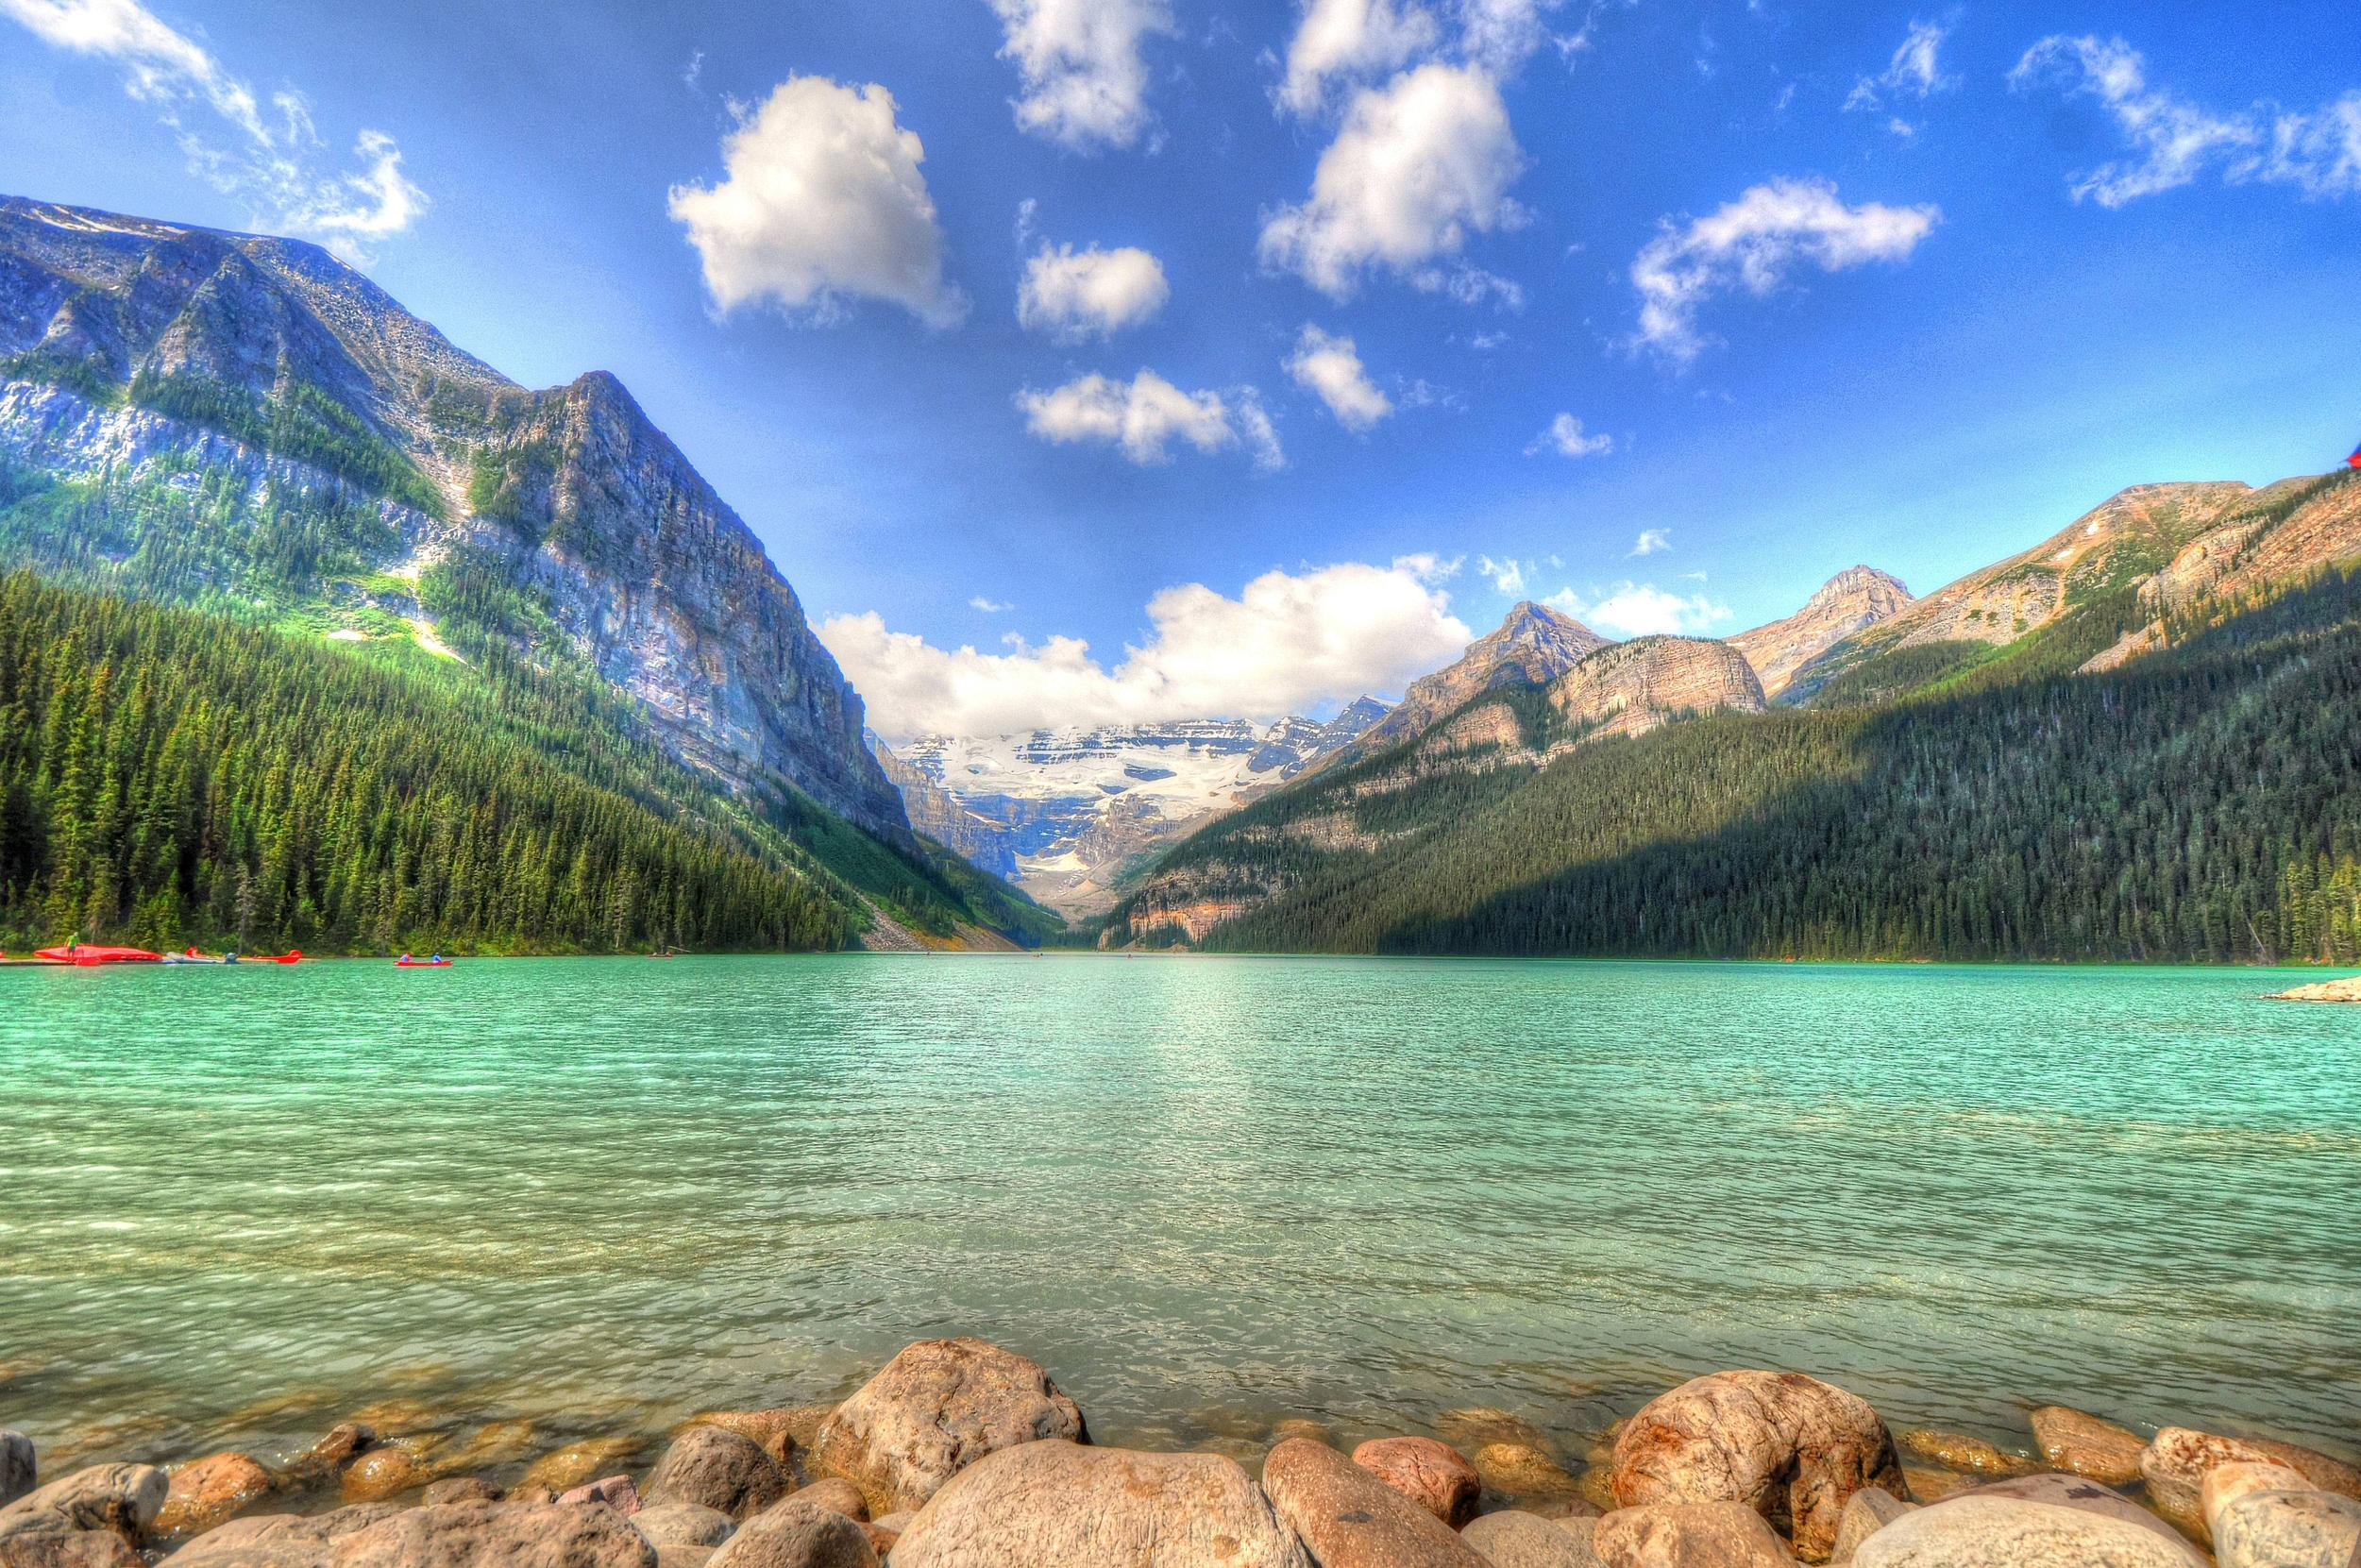 Download wallpaper Lake Louise, Alberta, Canada free desktop .